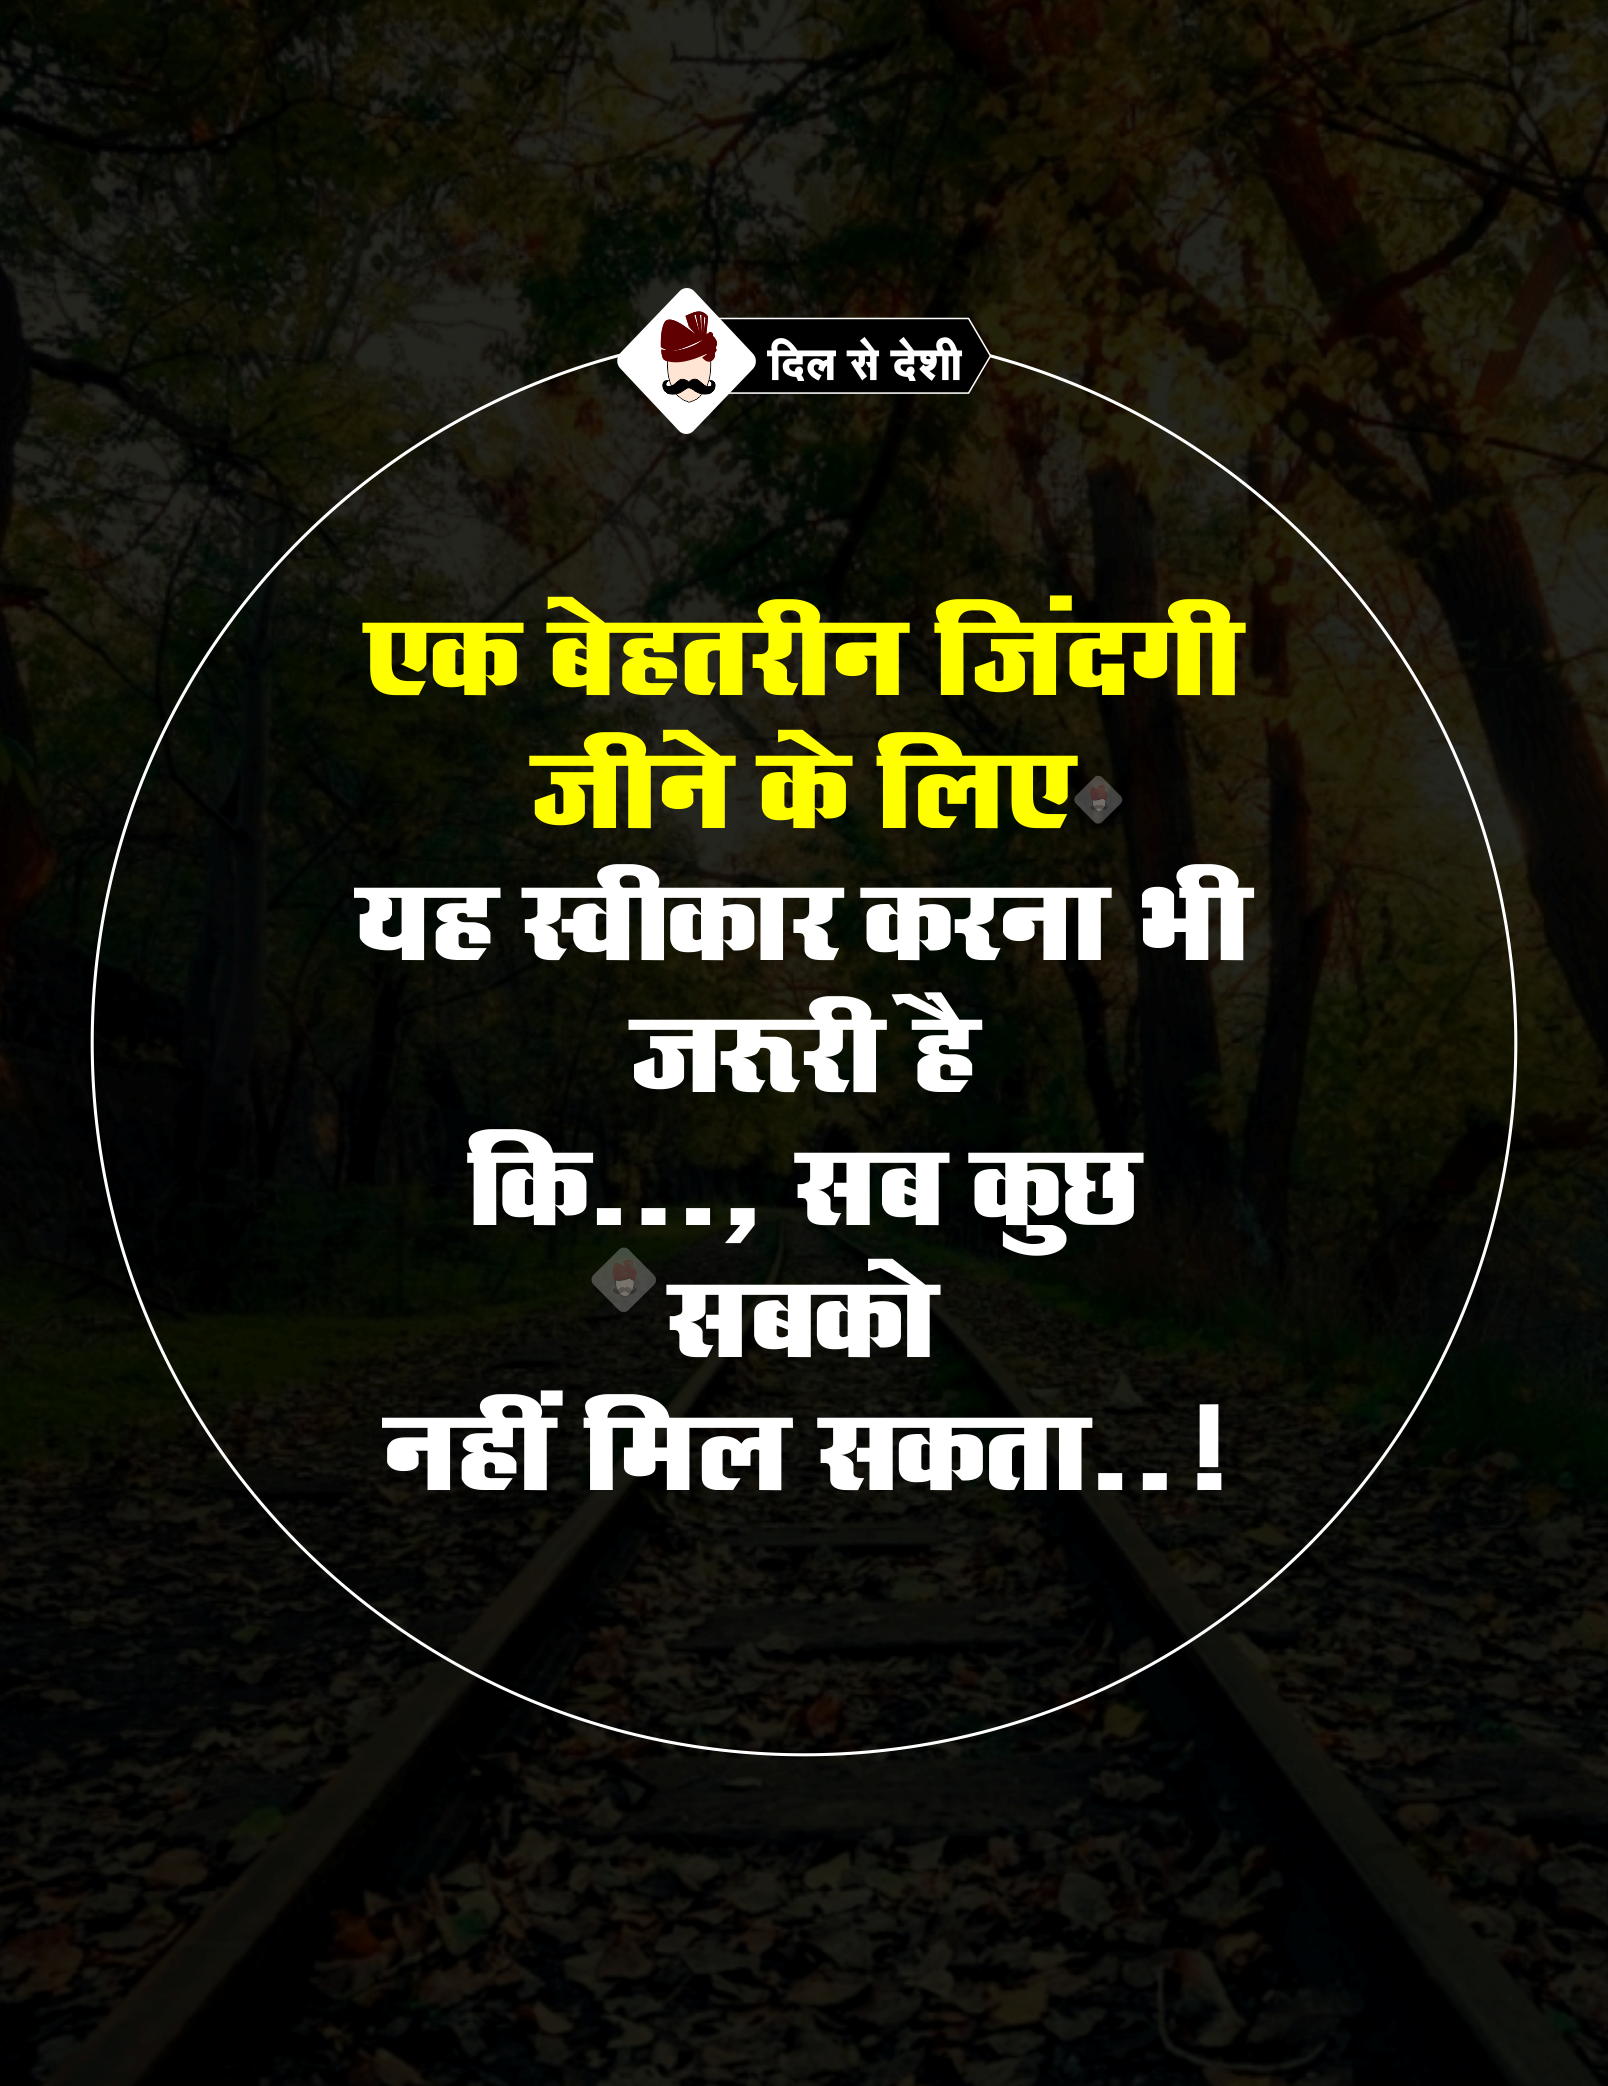 Dilsedeshi #hindi #suvichar #quotes #thought #hindisuvichar